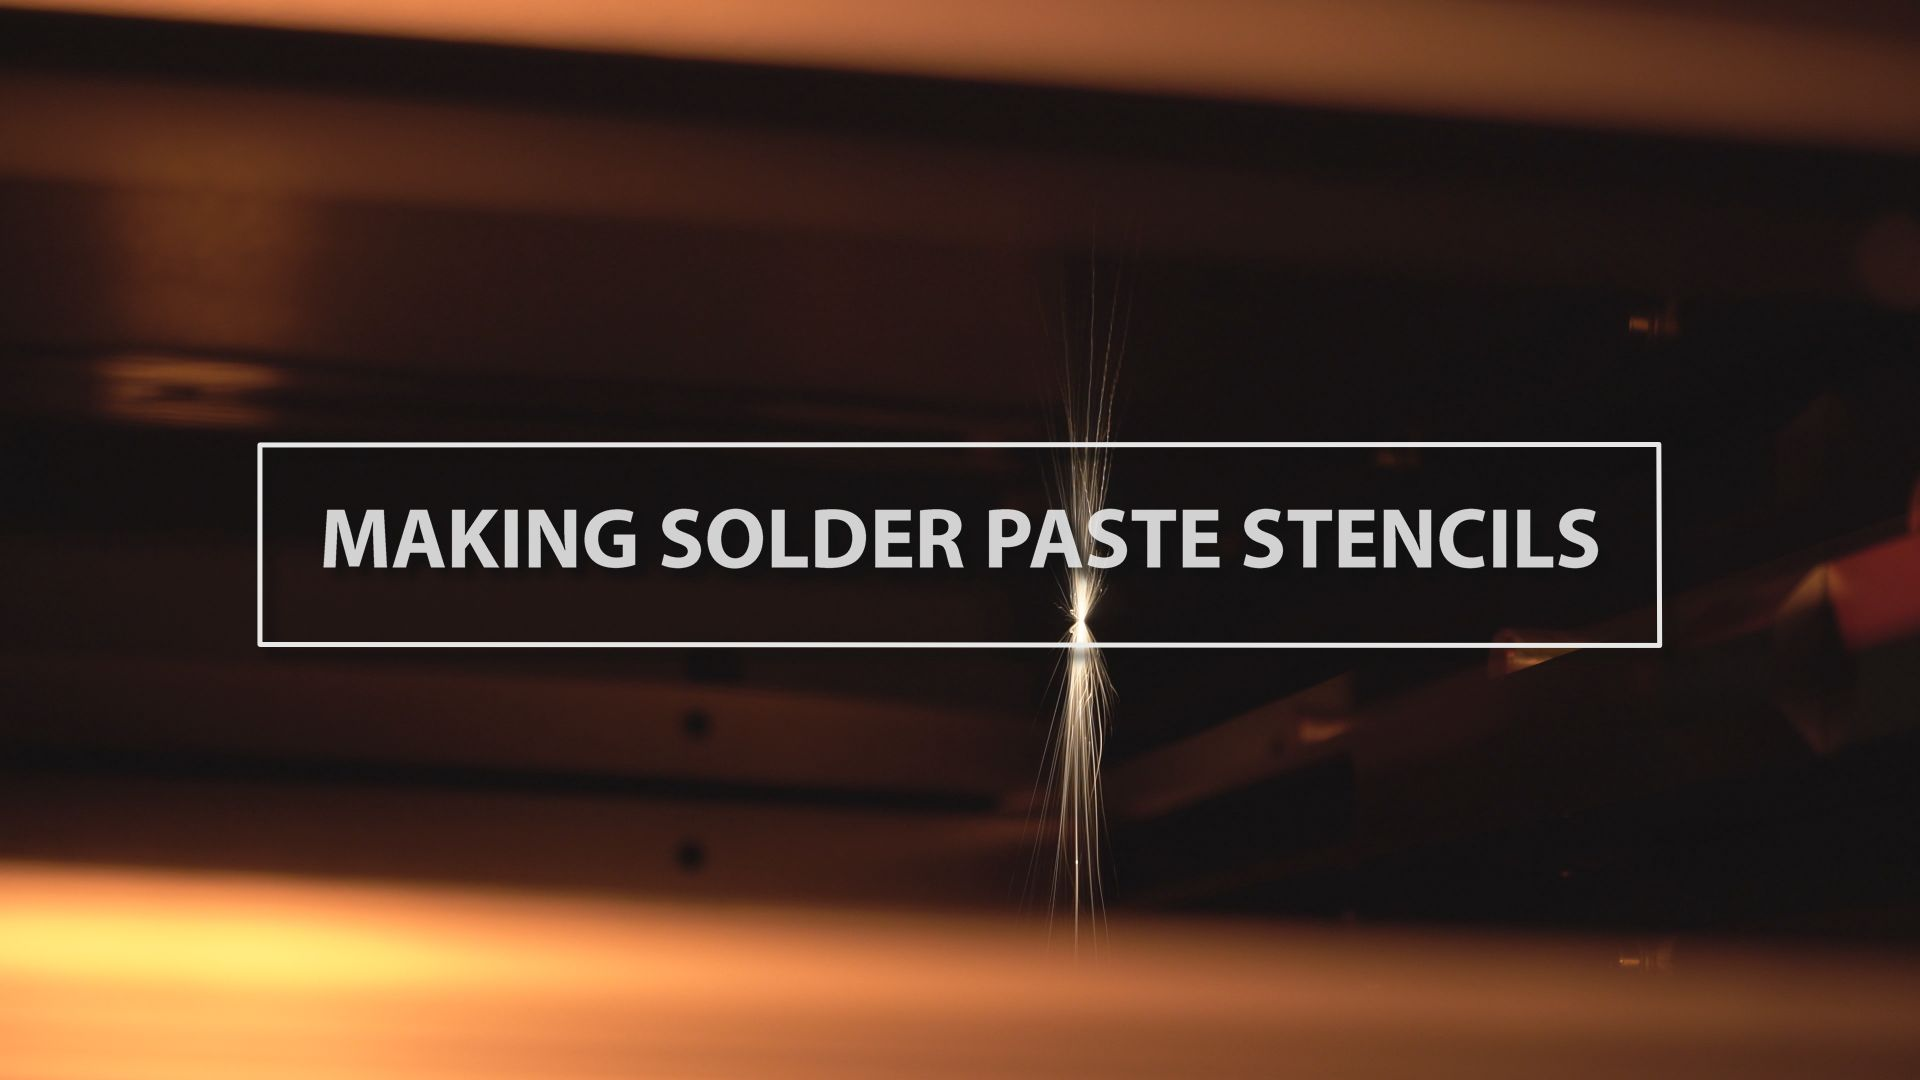 Technology Thursday: Making Solder Paste Stencils